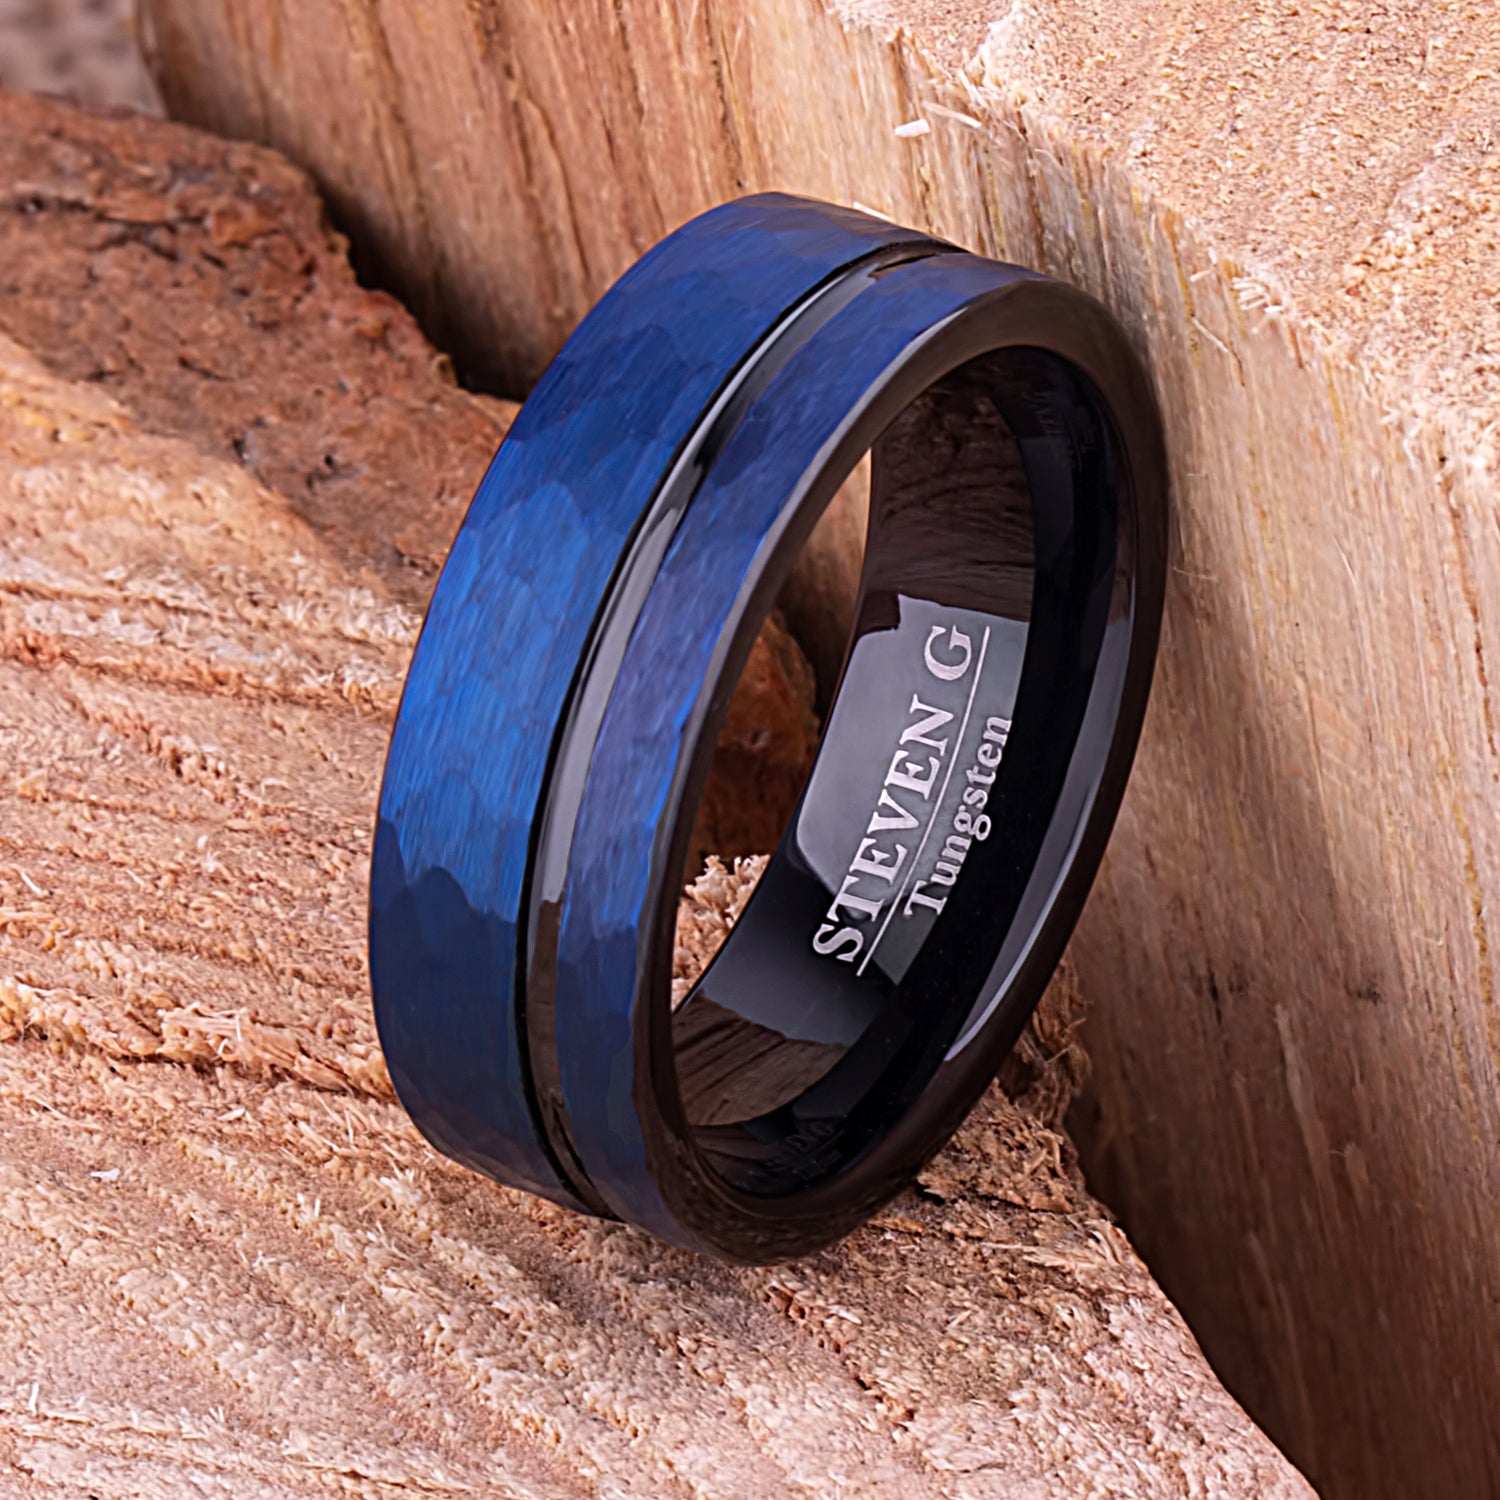 Black and Blue Tungsten Ring 8mm - TCR086 unique black and blue men's engagement or wedding ring or anniversary band